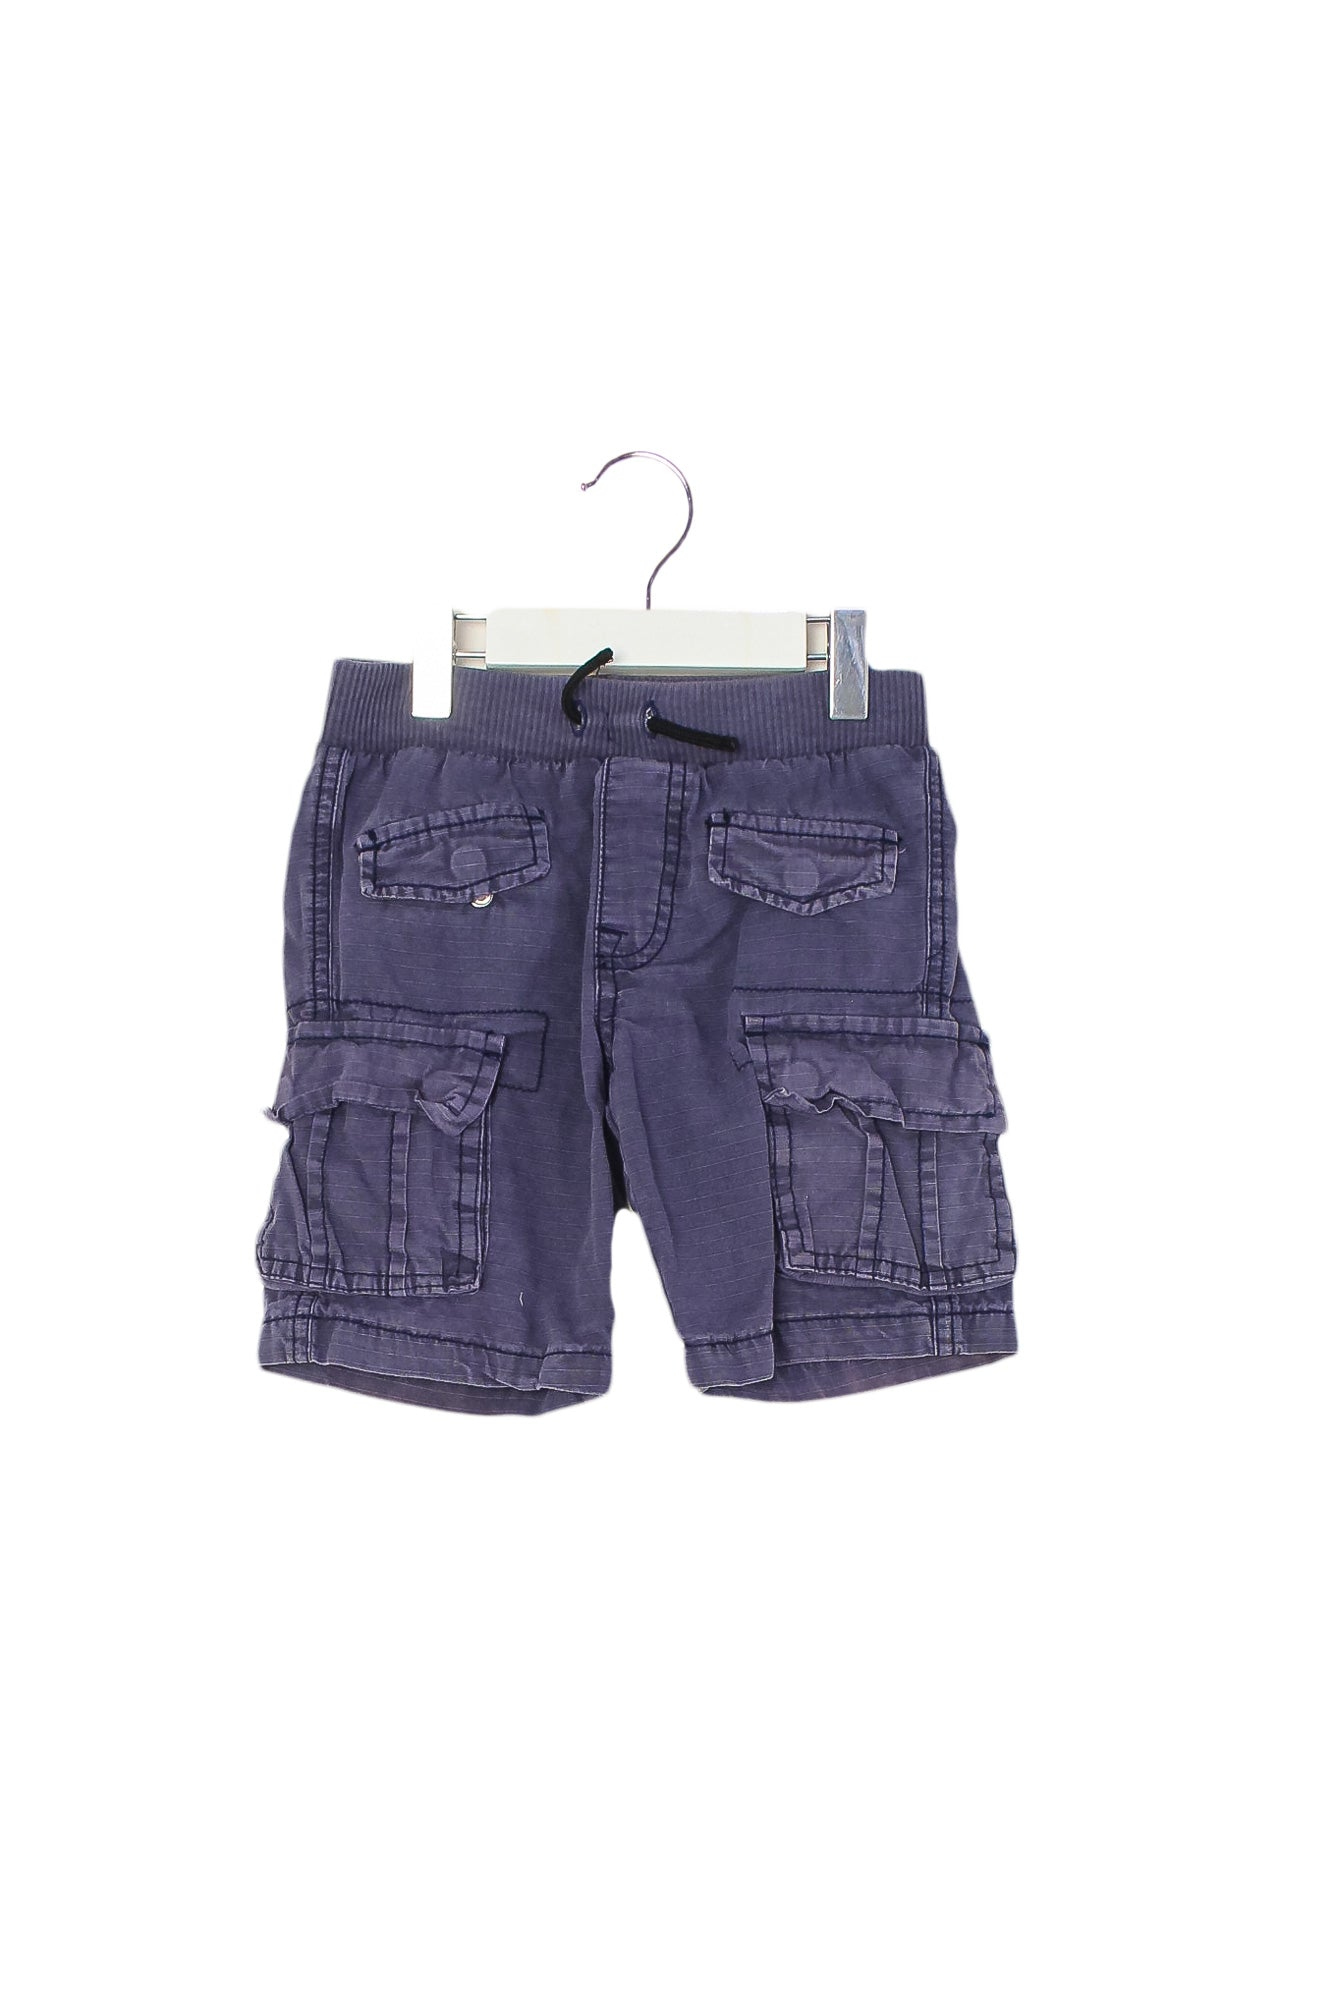 7 For All Mankind Shorts 4T